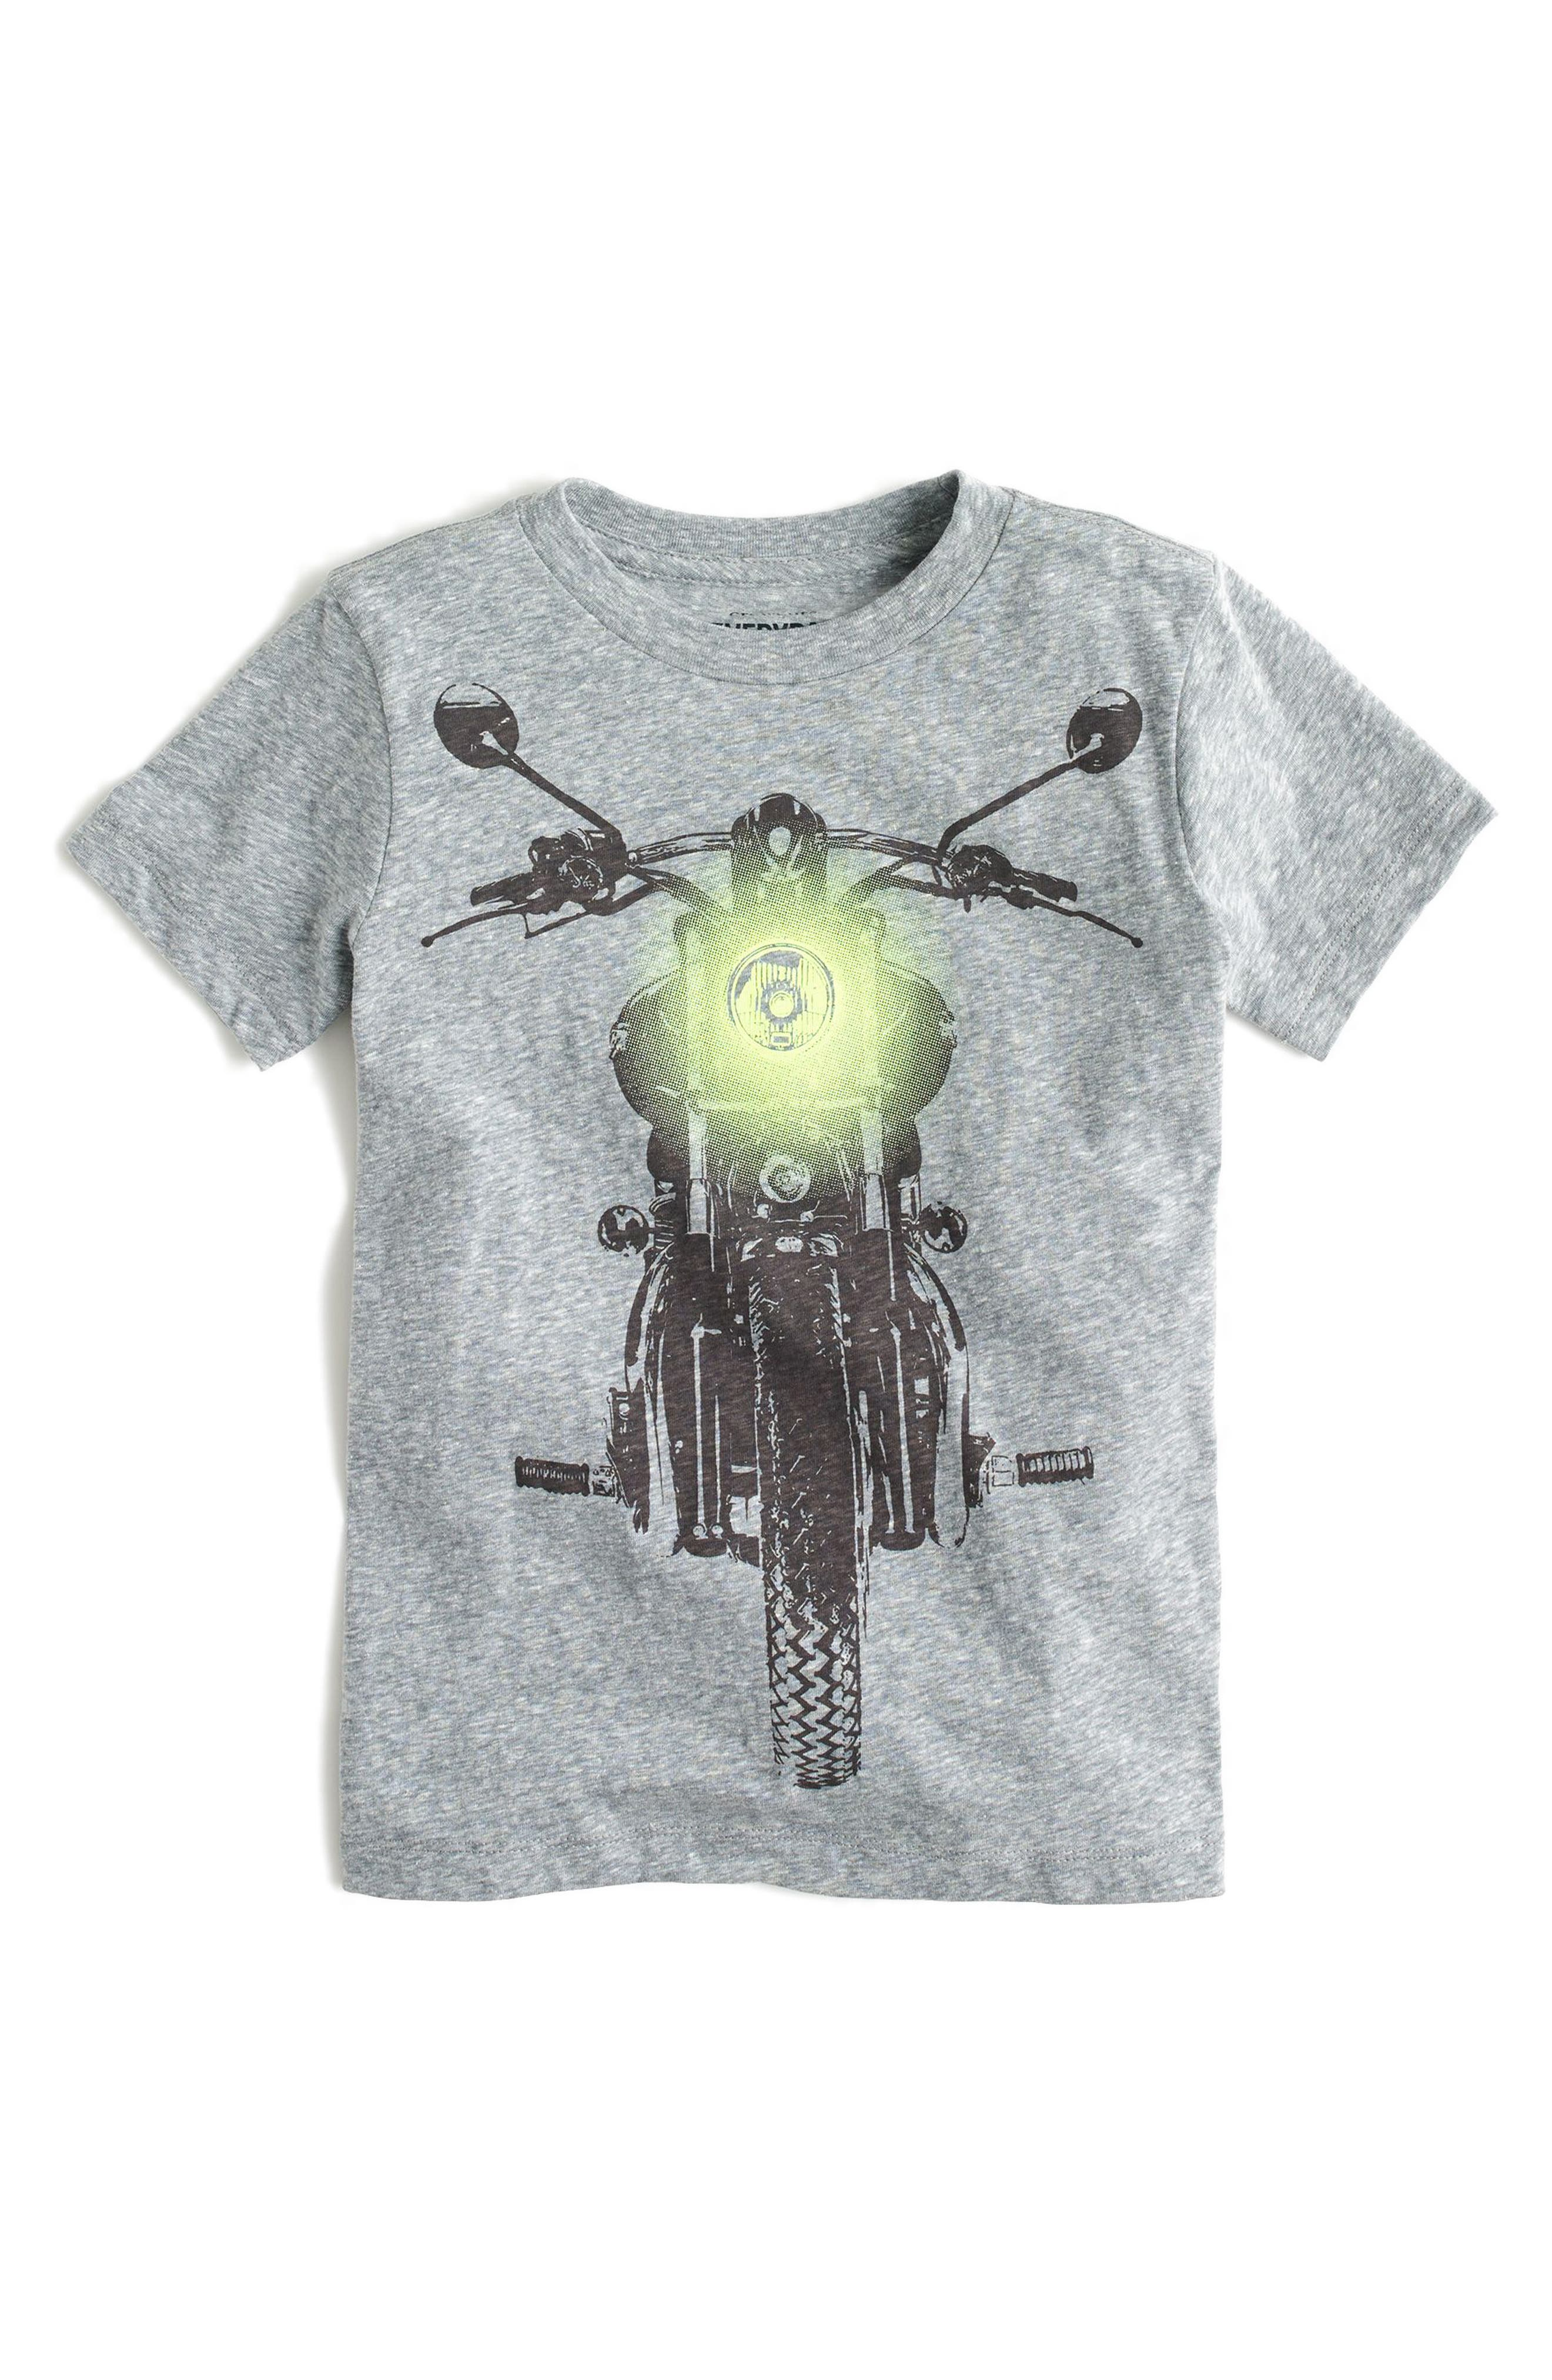 Glow in the Dark Motorcycle Graphic T-Shirt,                             Main thumbnail 1, color,                             Dark Boulder